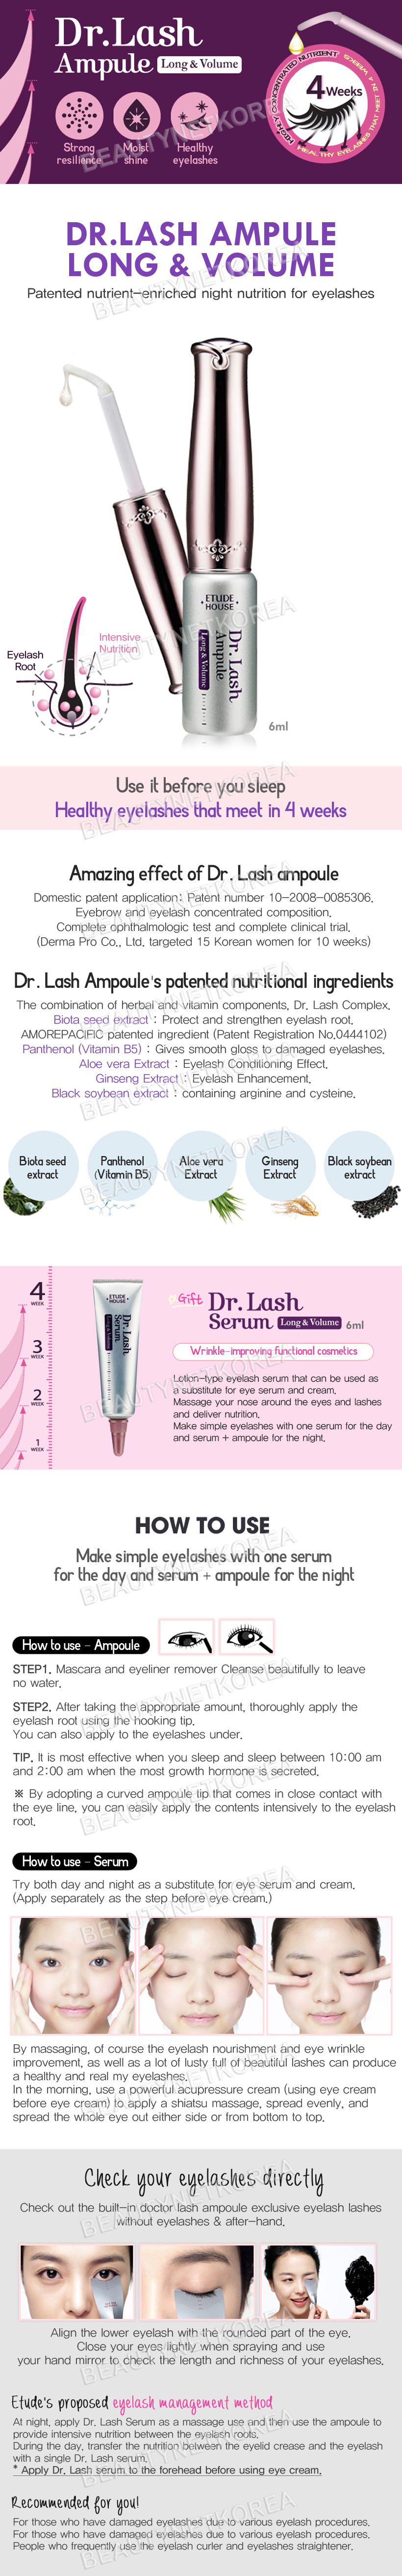 b0093f1af6a How to use - Serum Try both day and night as a substitute for eye serum and  cream. (Apply separately as the step before eye cream.)